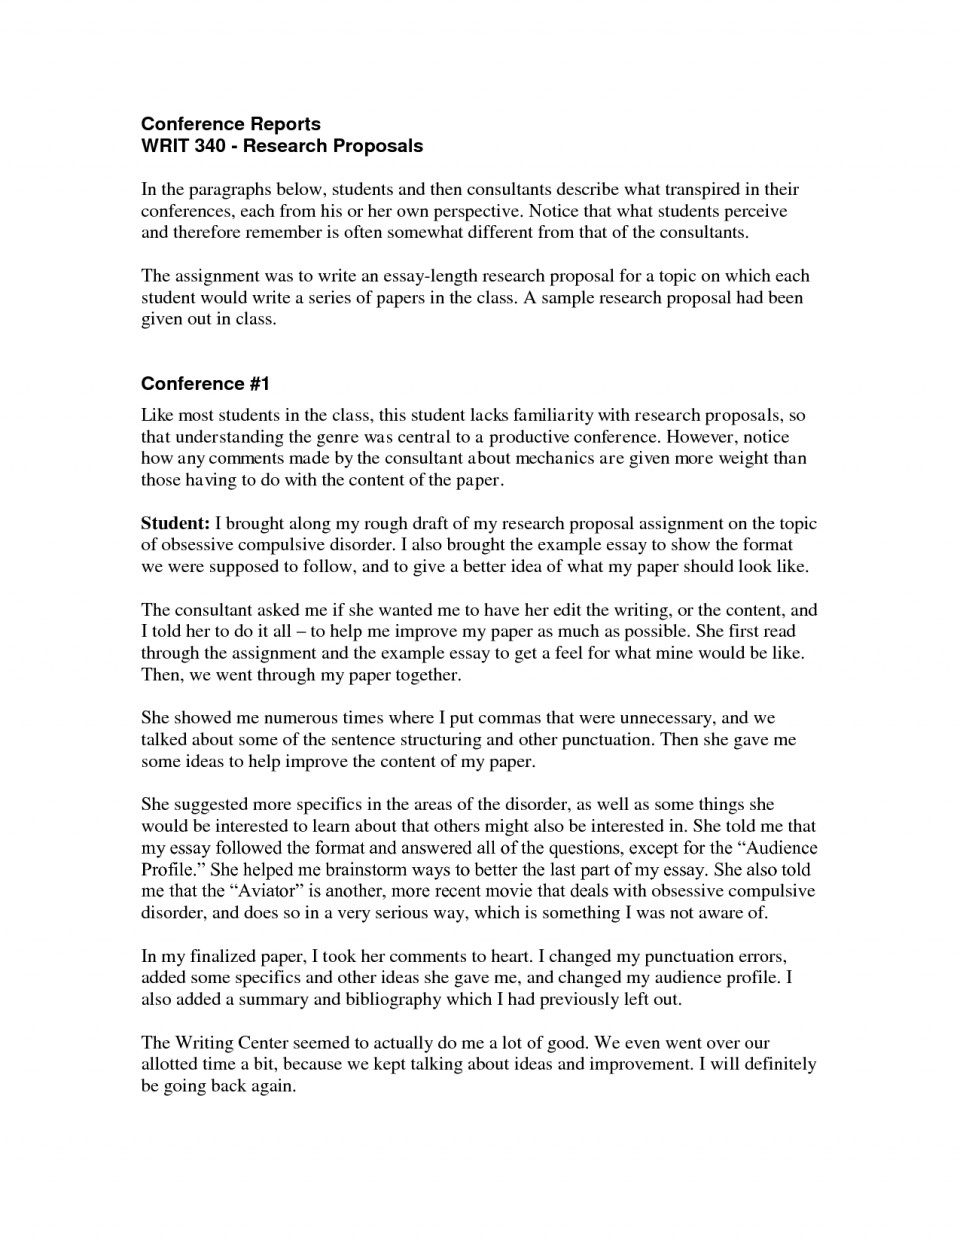 008 Apa Research Paper Proposal Sample 542914 Template For Beautiful A Example Of Writing 960